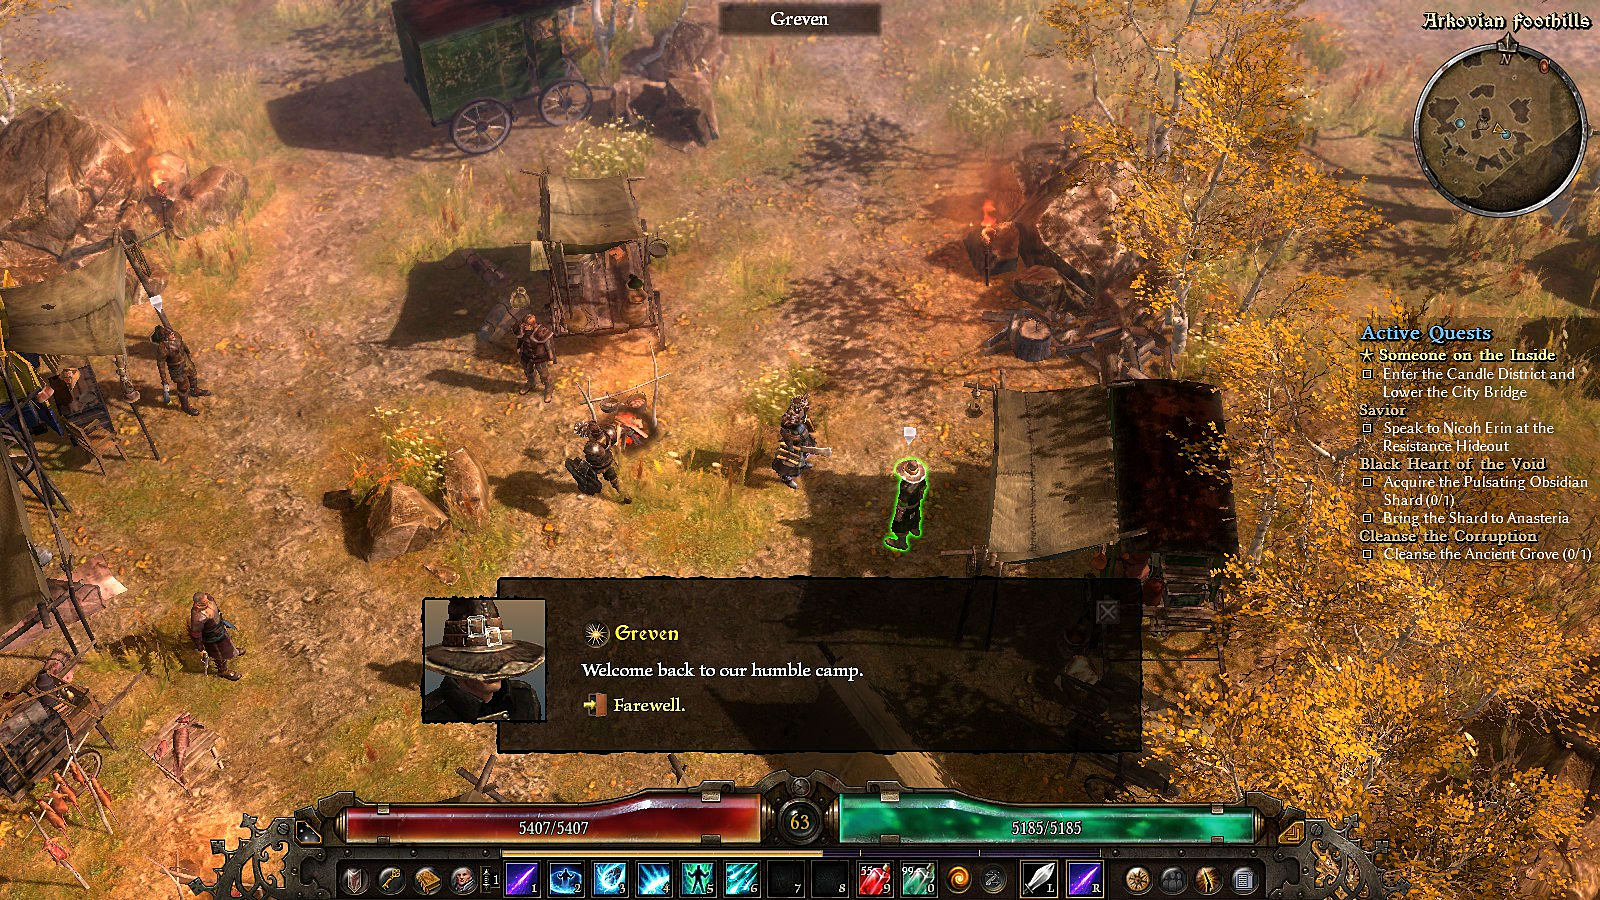 Grim dawn forgotten gods quest guide | Quests  2019-03-29